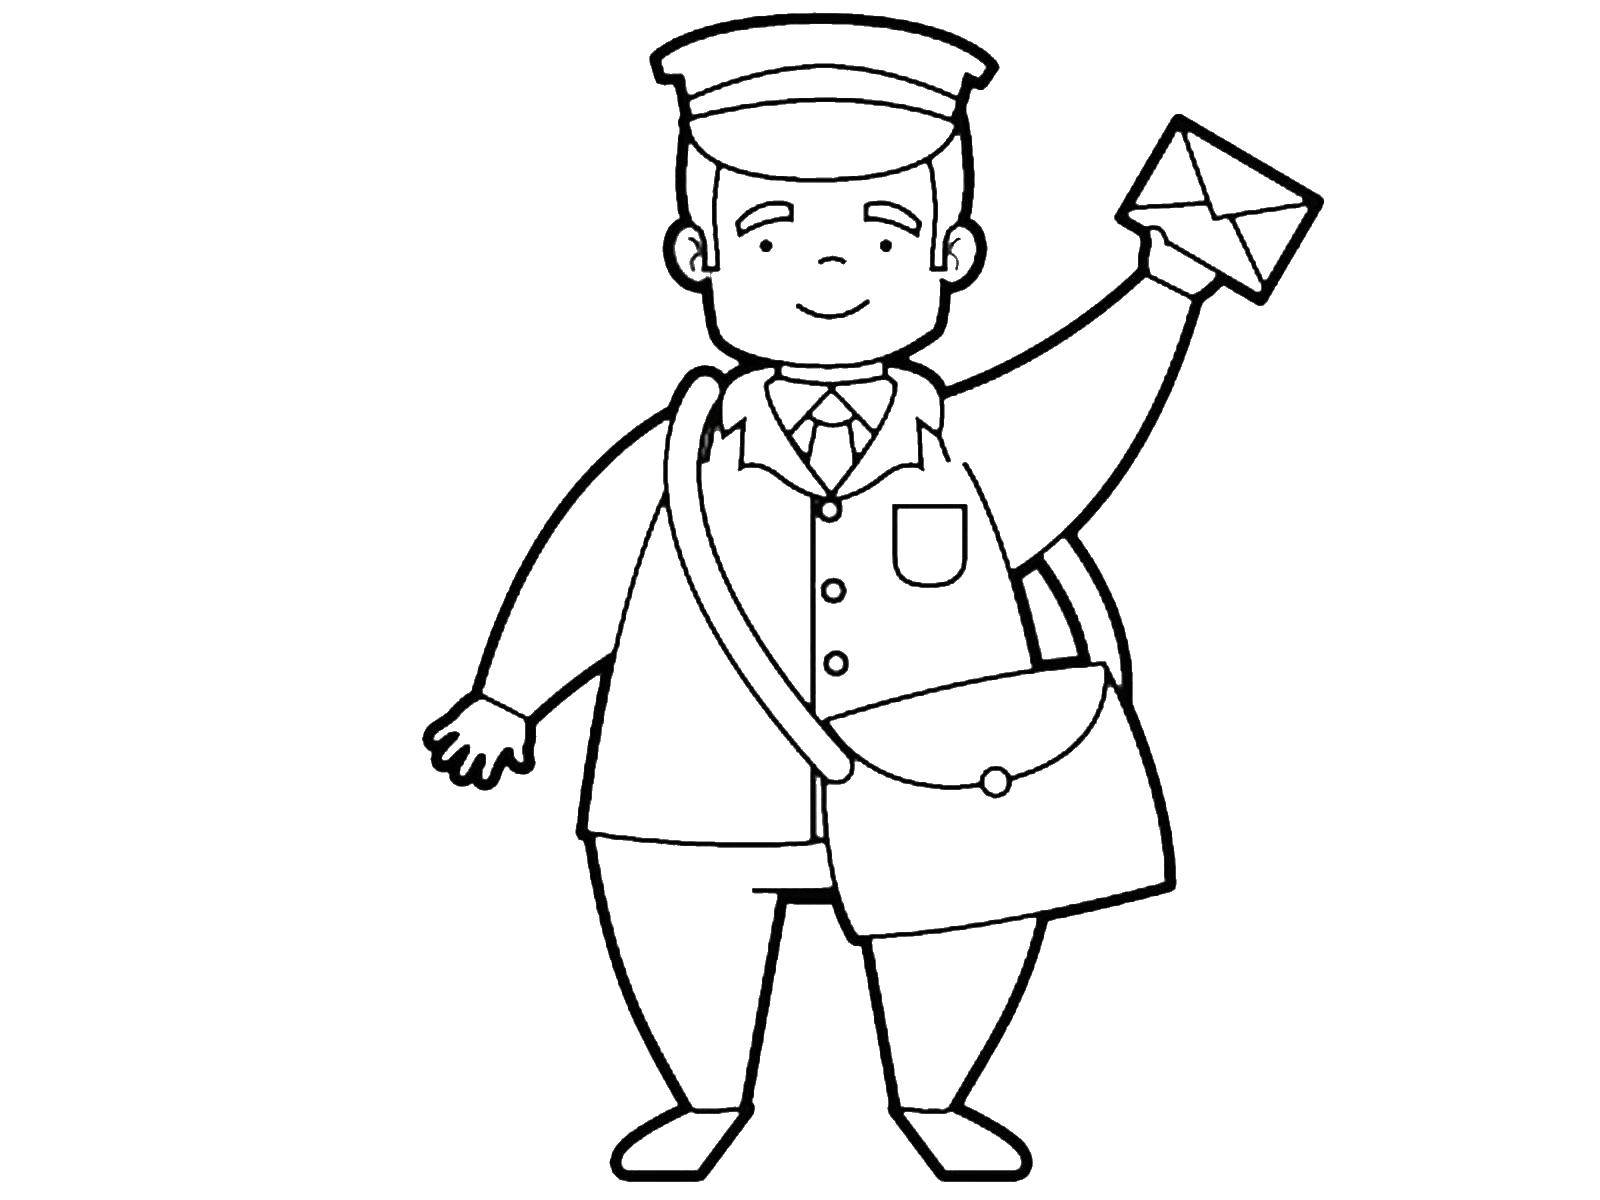 Coloring The postman Download profession, postman, mail,.  Print